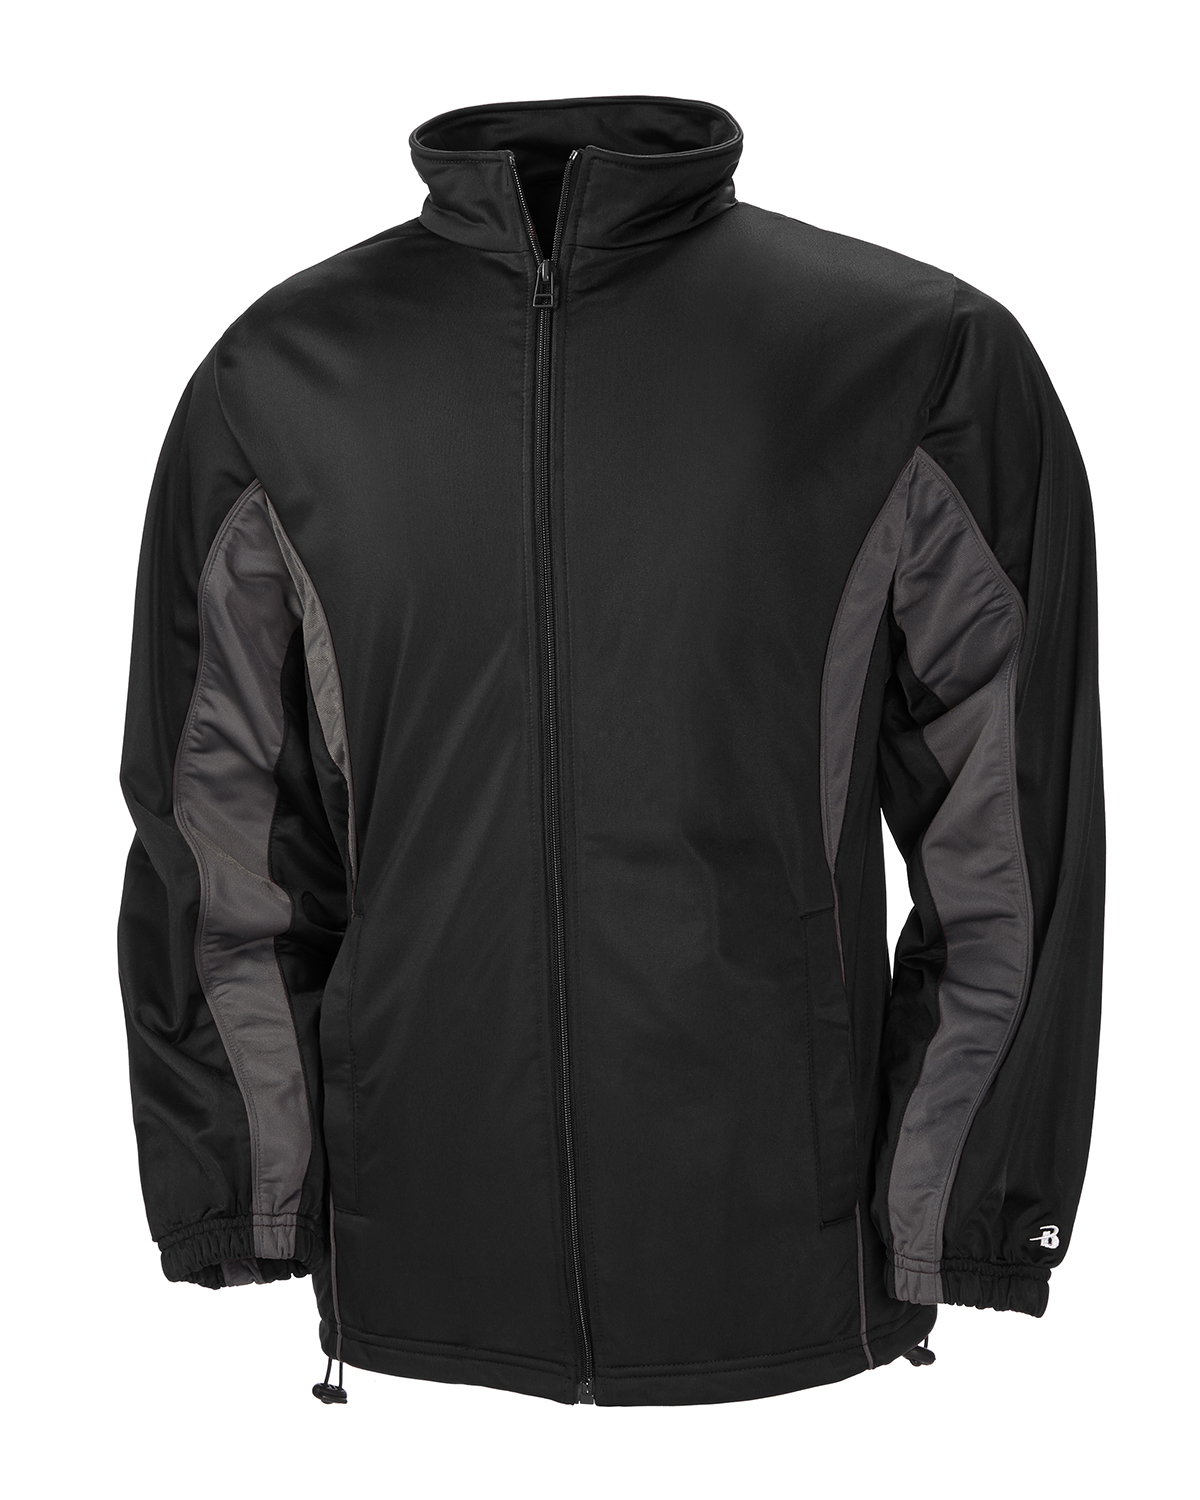 Badger Sport B7703 - Adult Brushed Tricot Drive Jacket